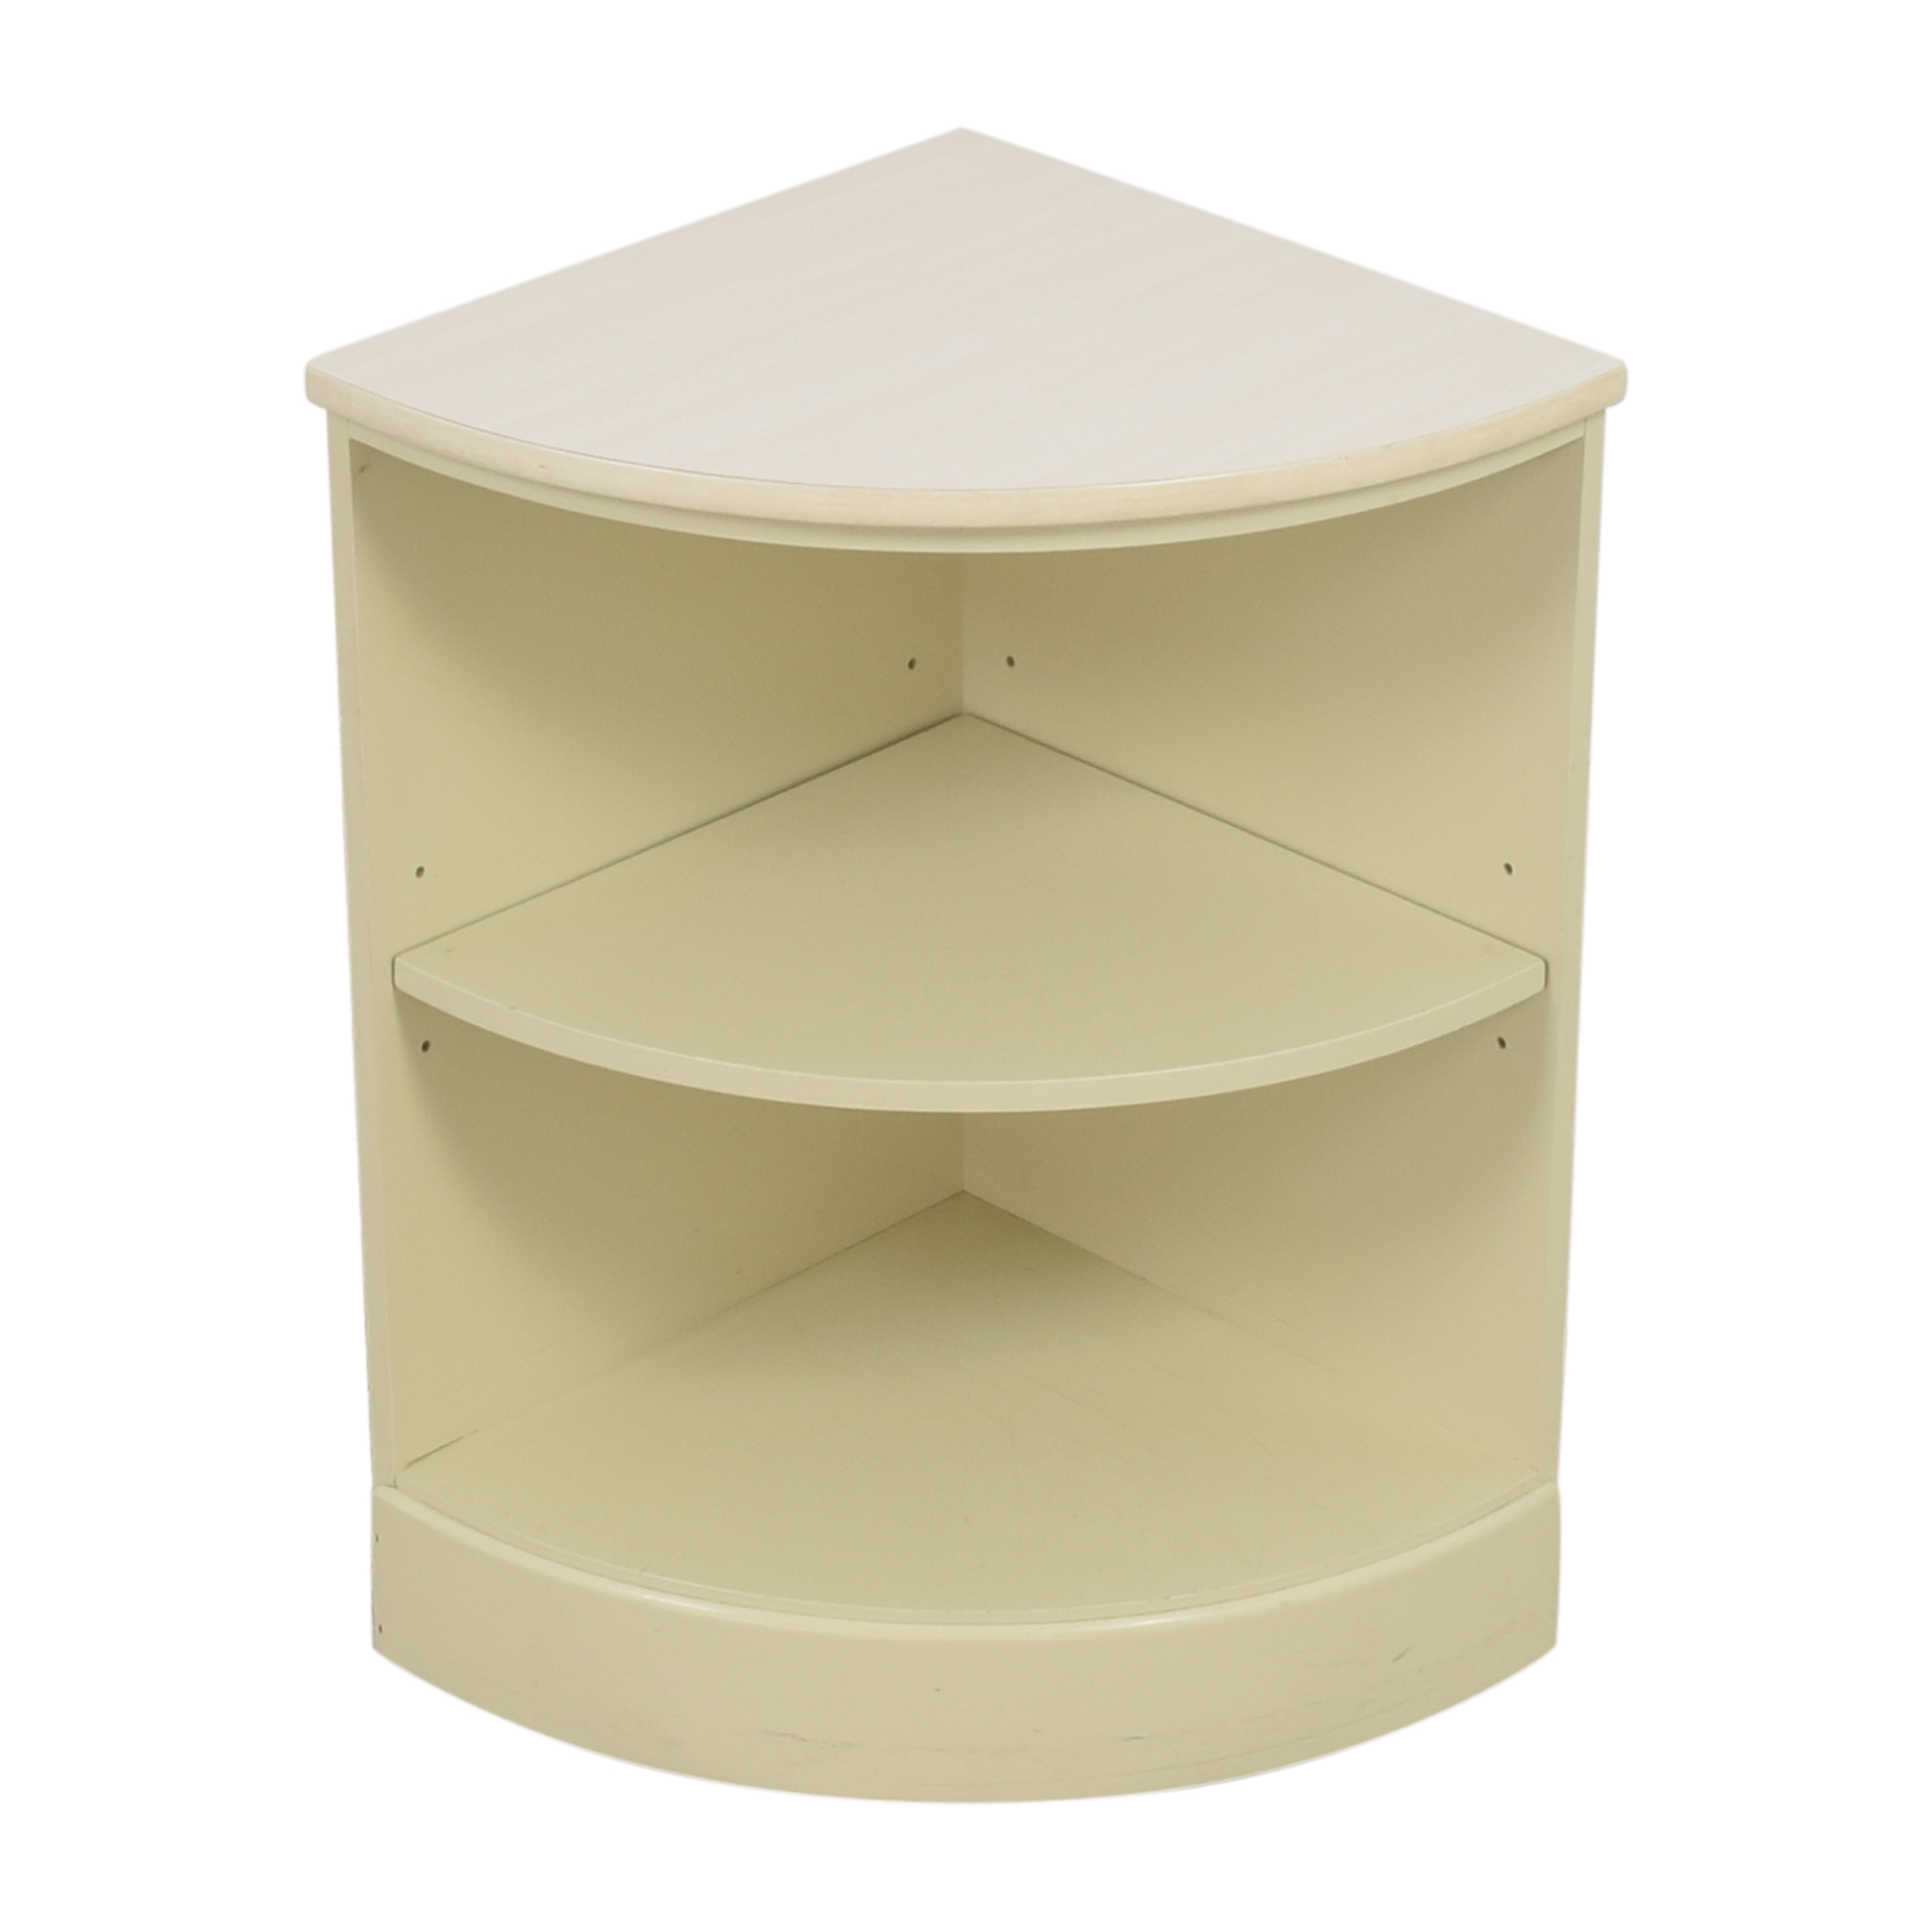 buy Ethan Allen Rounded Corner Shelf Ethan Allen Storage